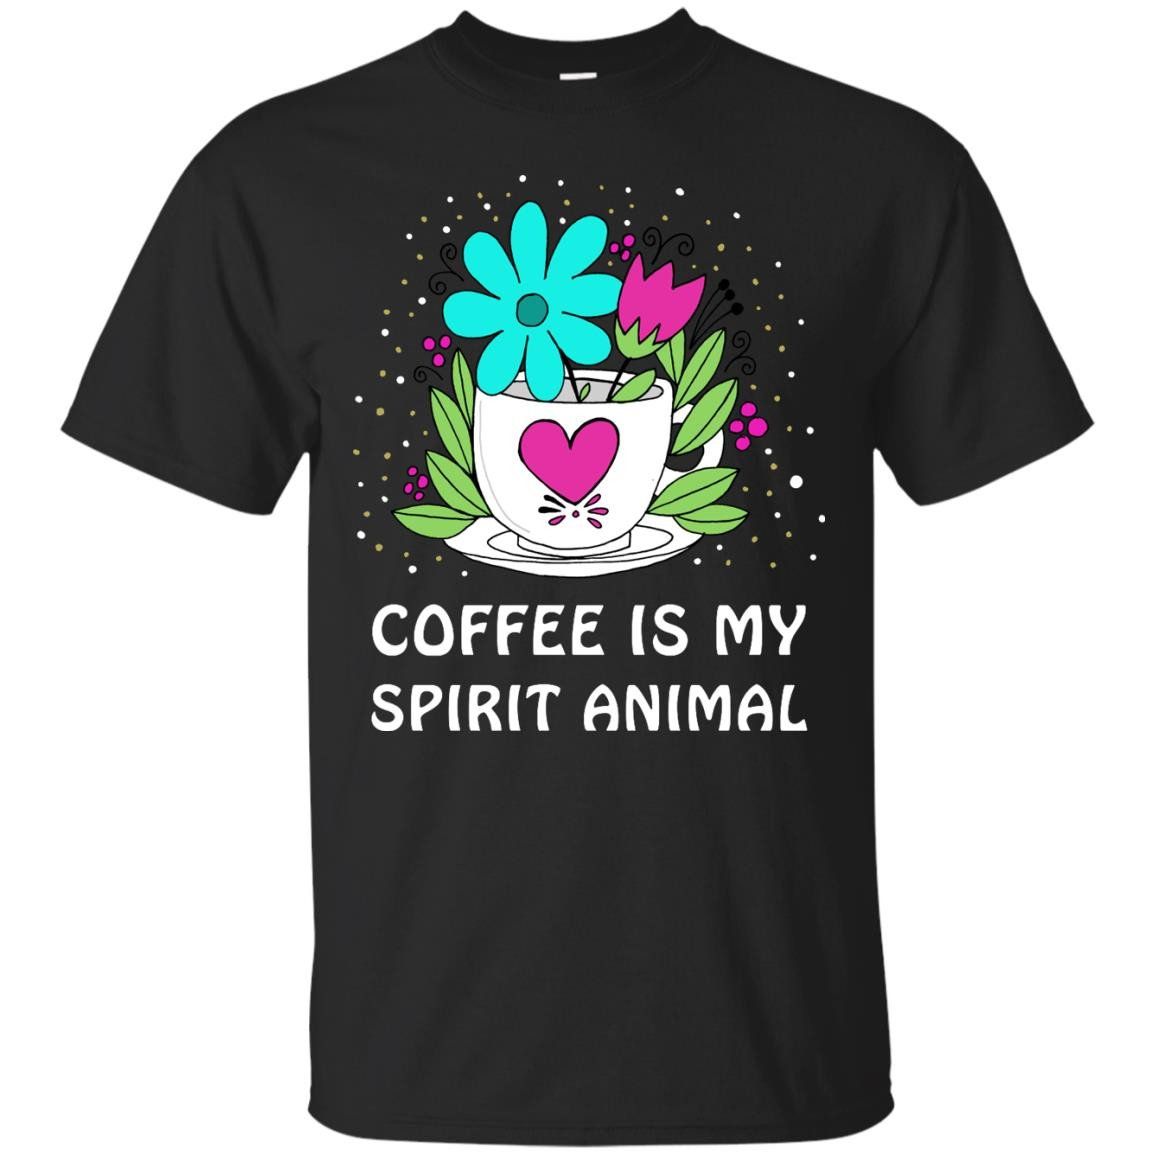 Coffee – Coffee Is My Spirit Animal Tshirt For Men And Women T Shirt & Hoodie